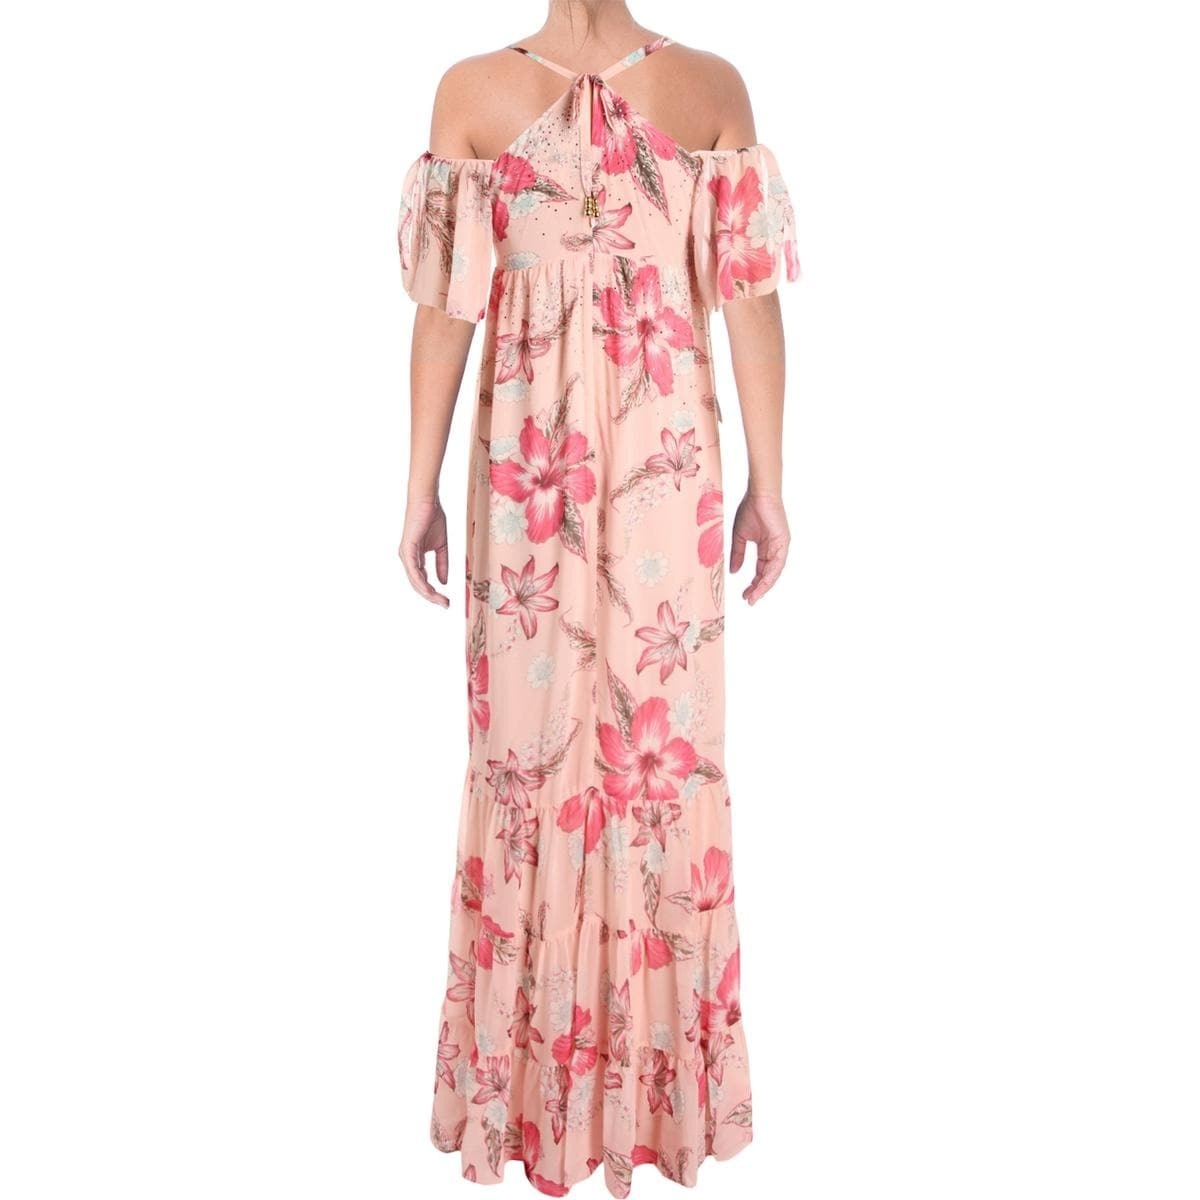 b571a8e8e Shop Juicy Couture Black Label Womens Hidden Cove Maxi Dress Chiffon Floral  Print - Free Shipping On Orders Over $45 - Overstock - 23474380